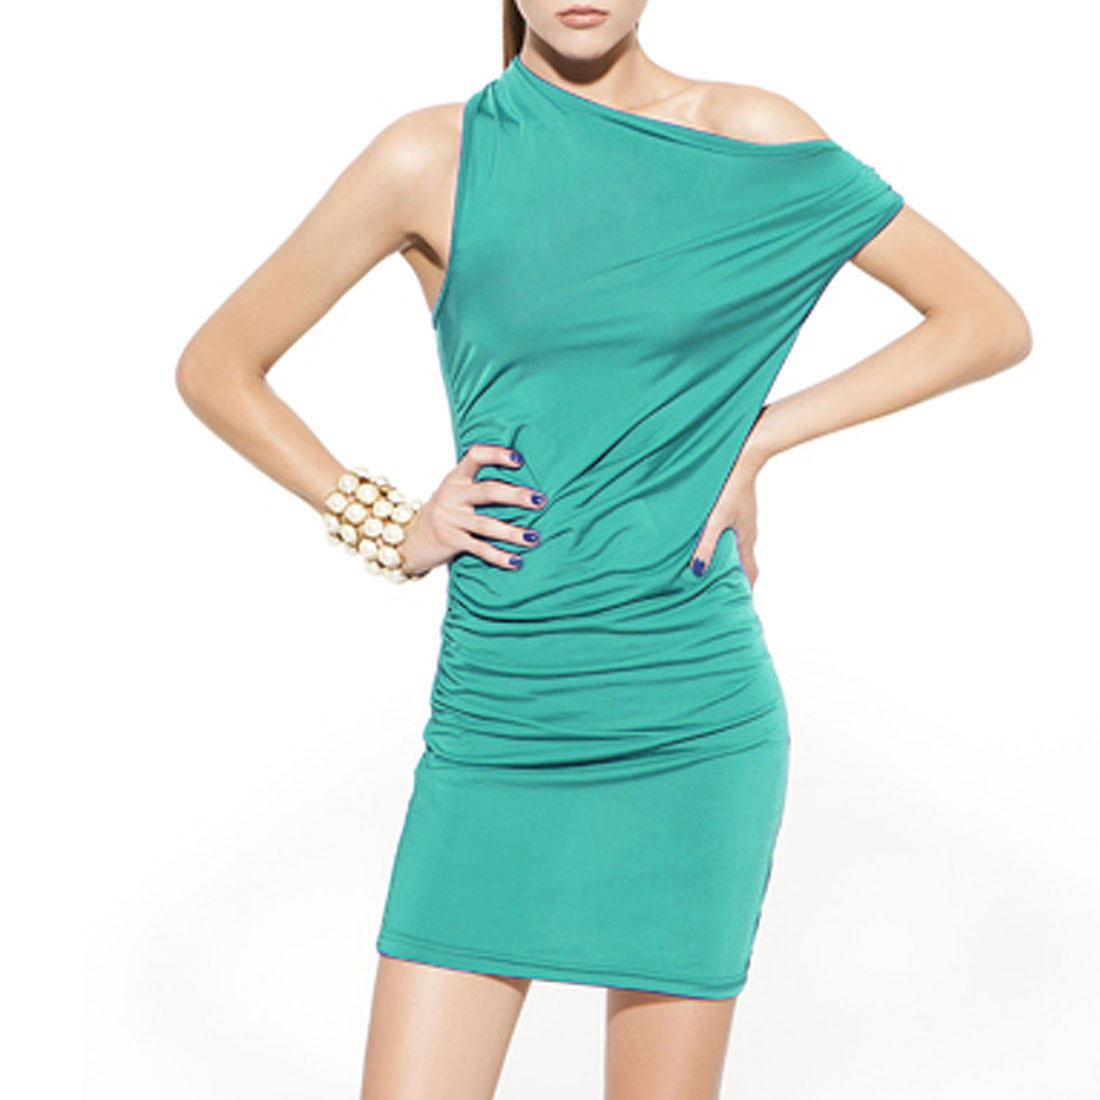 Charming Green Slanting Shoulder Backless Slim Mini Dress XS for Ladies